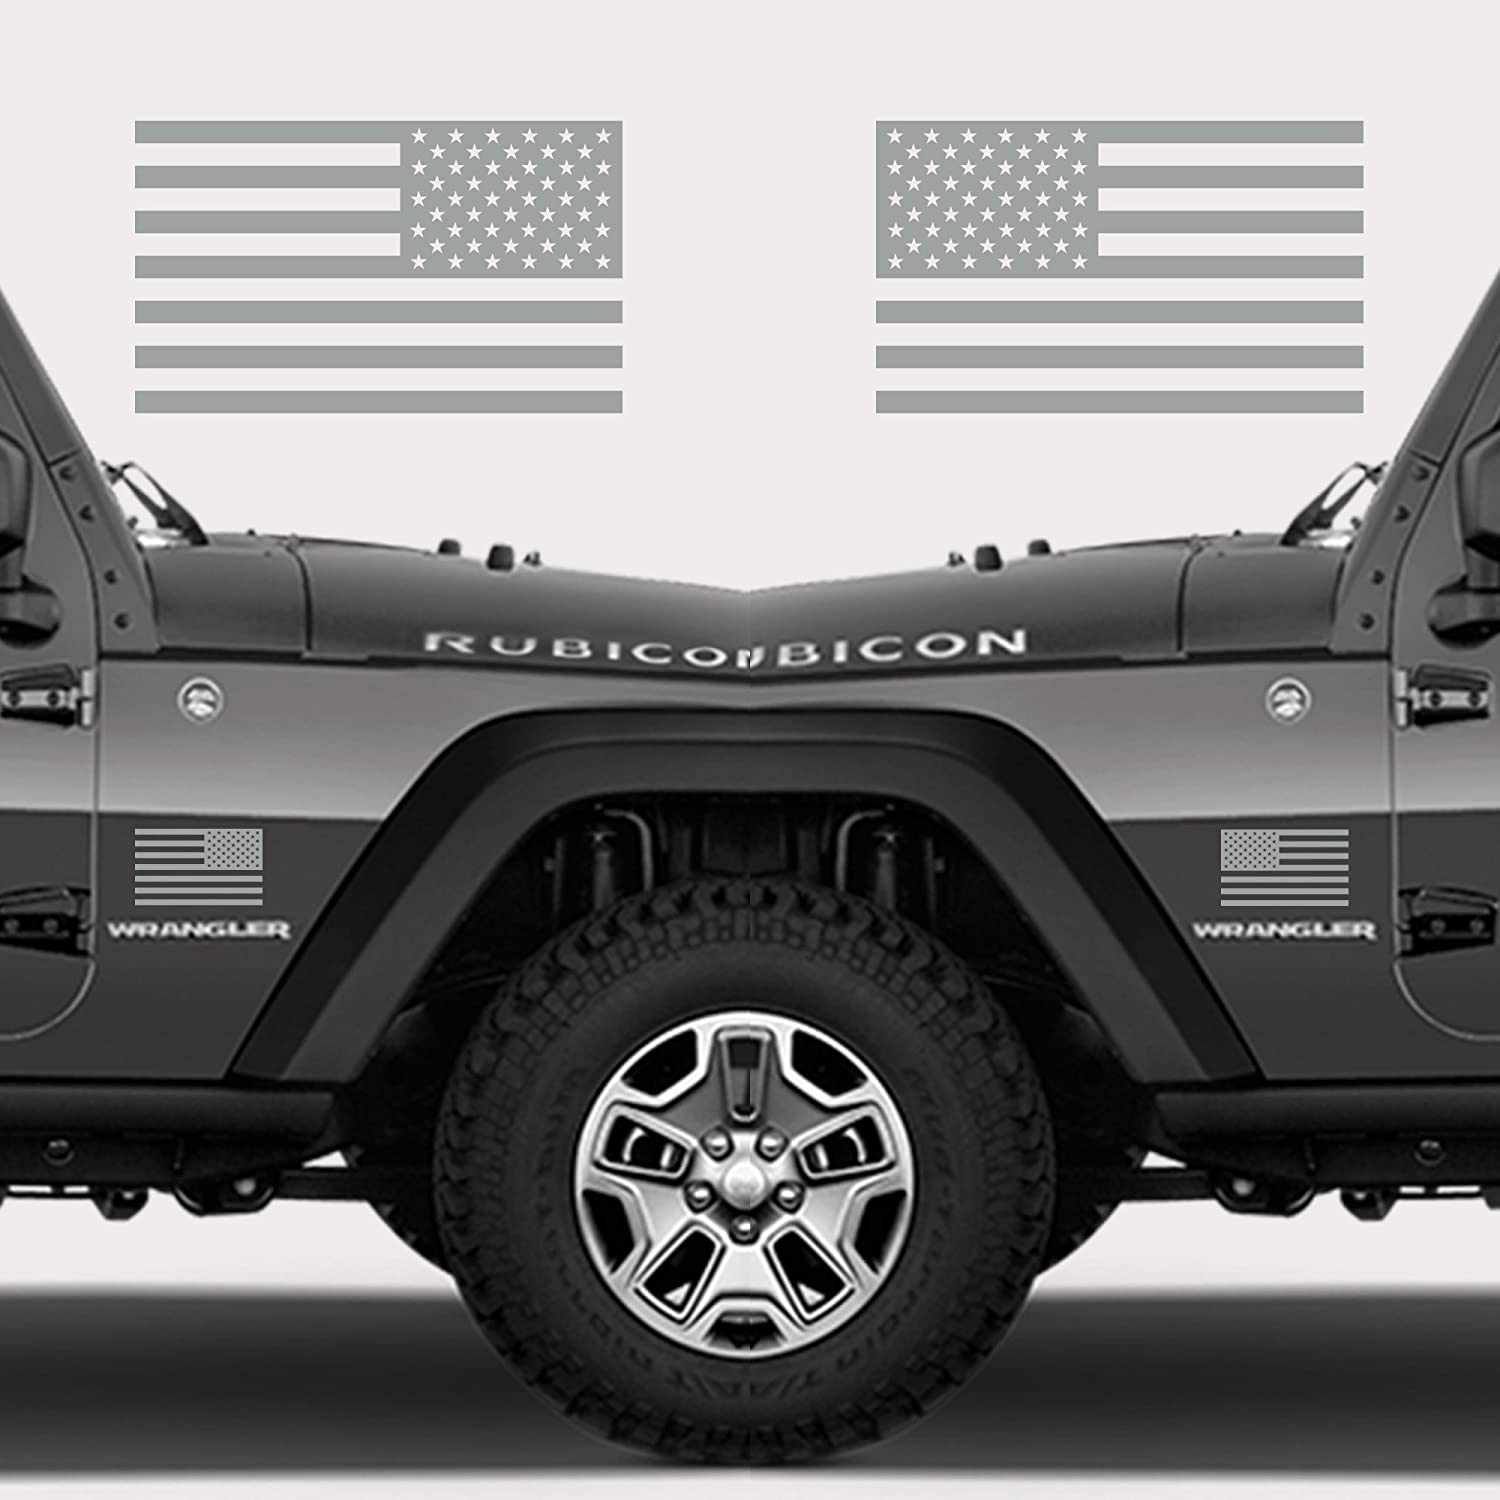 Classic Biker Gear Subdued American Flags Tactical Military Flag USA Decal 5x3 Pair Gloss Black